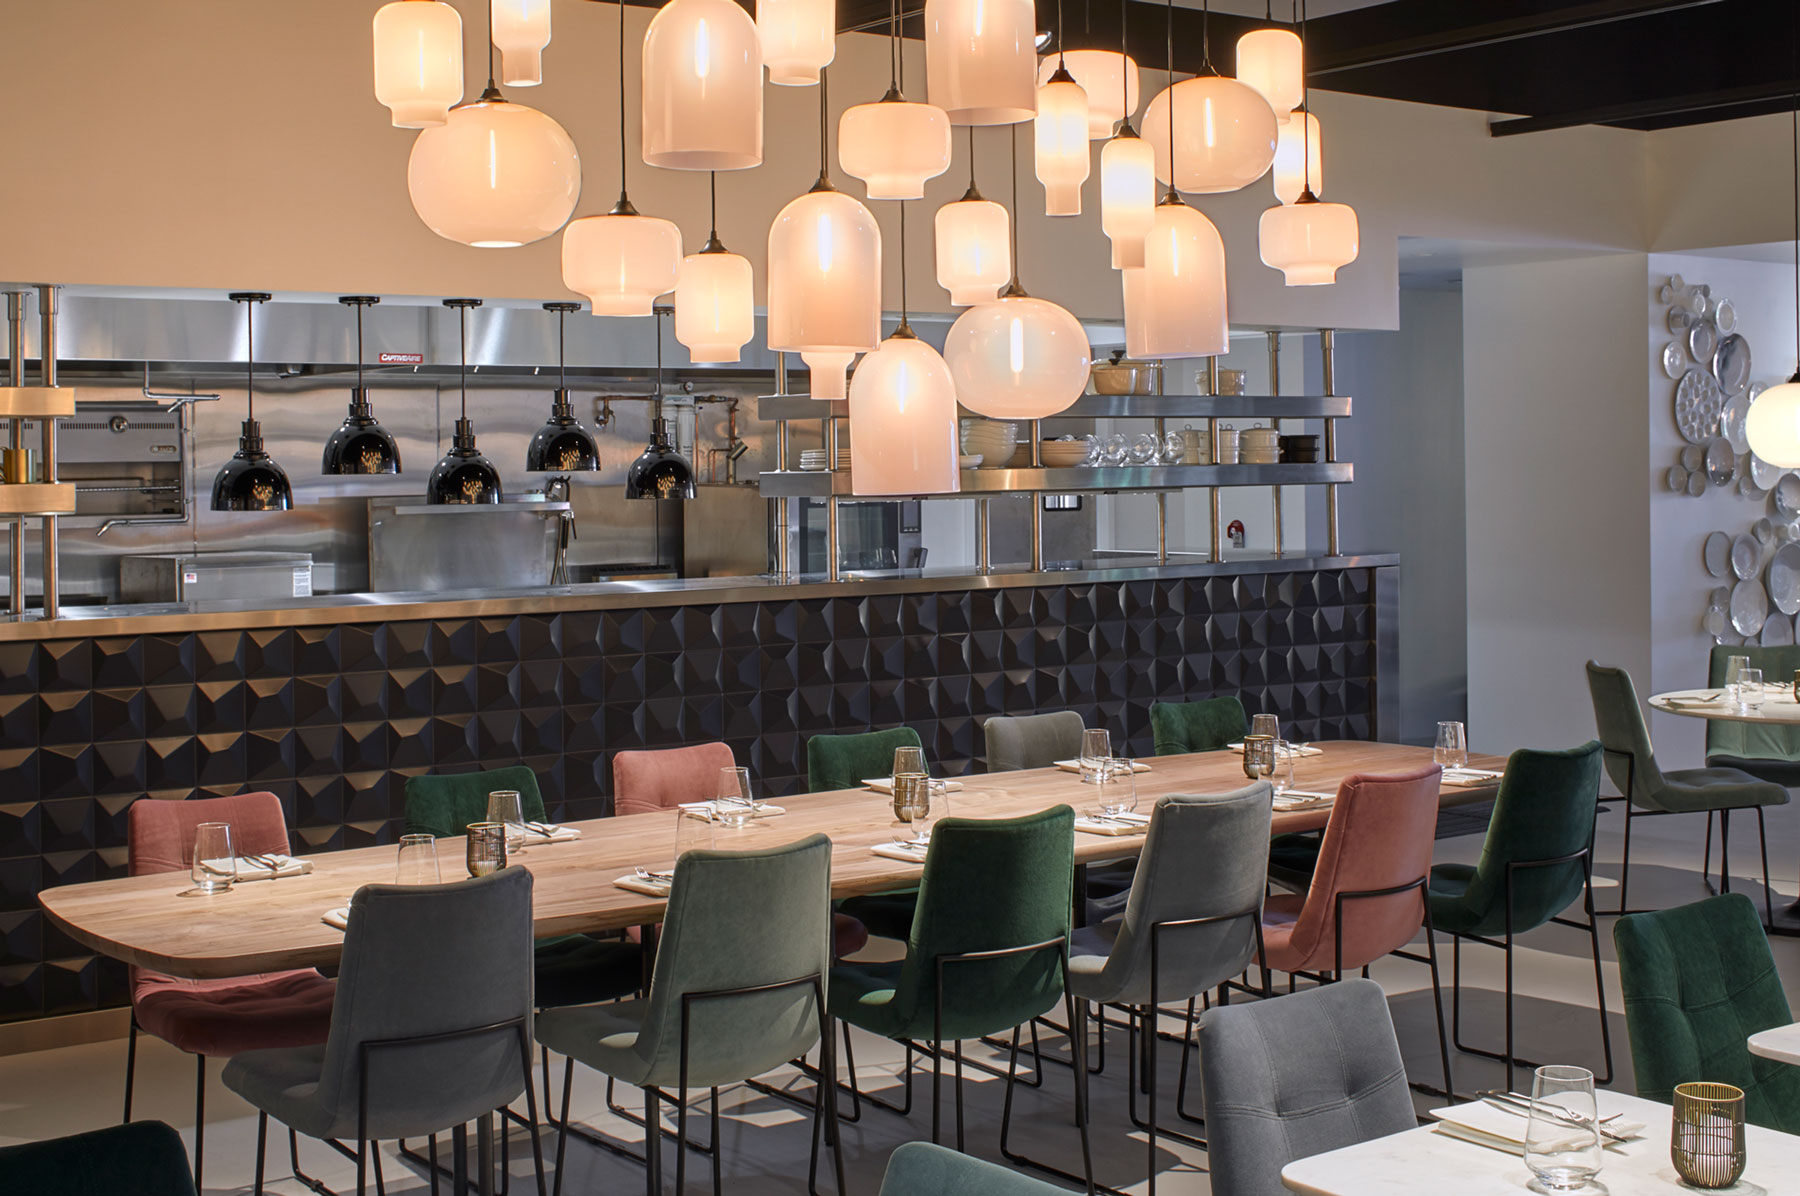 Crate & Barrel restaurant - The Table at Crate pendant light clusters